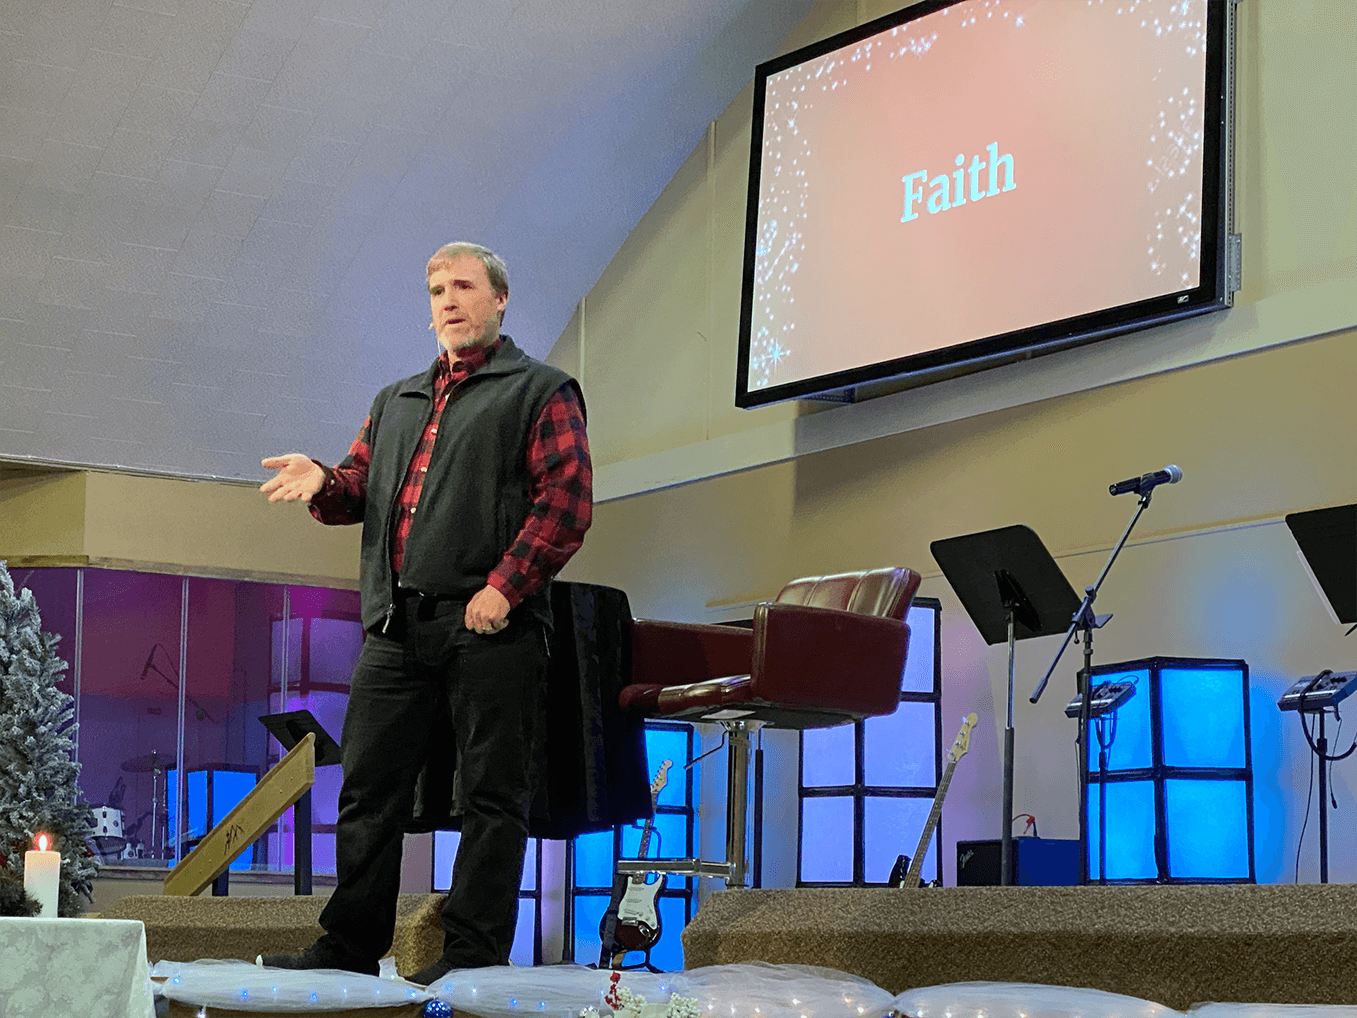 Pastor Scott preaching from the pulpit.